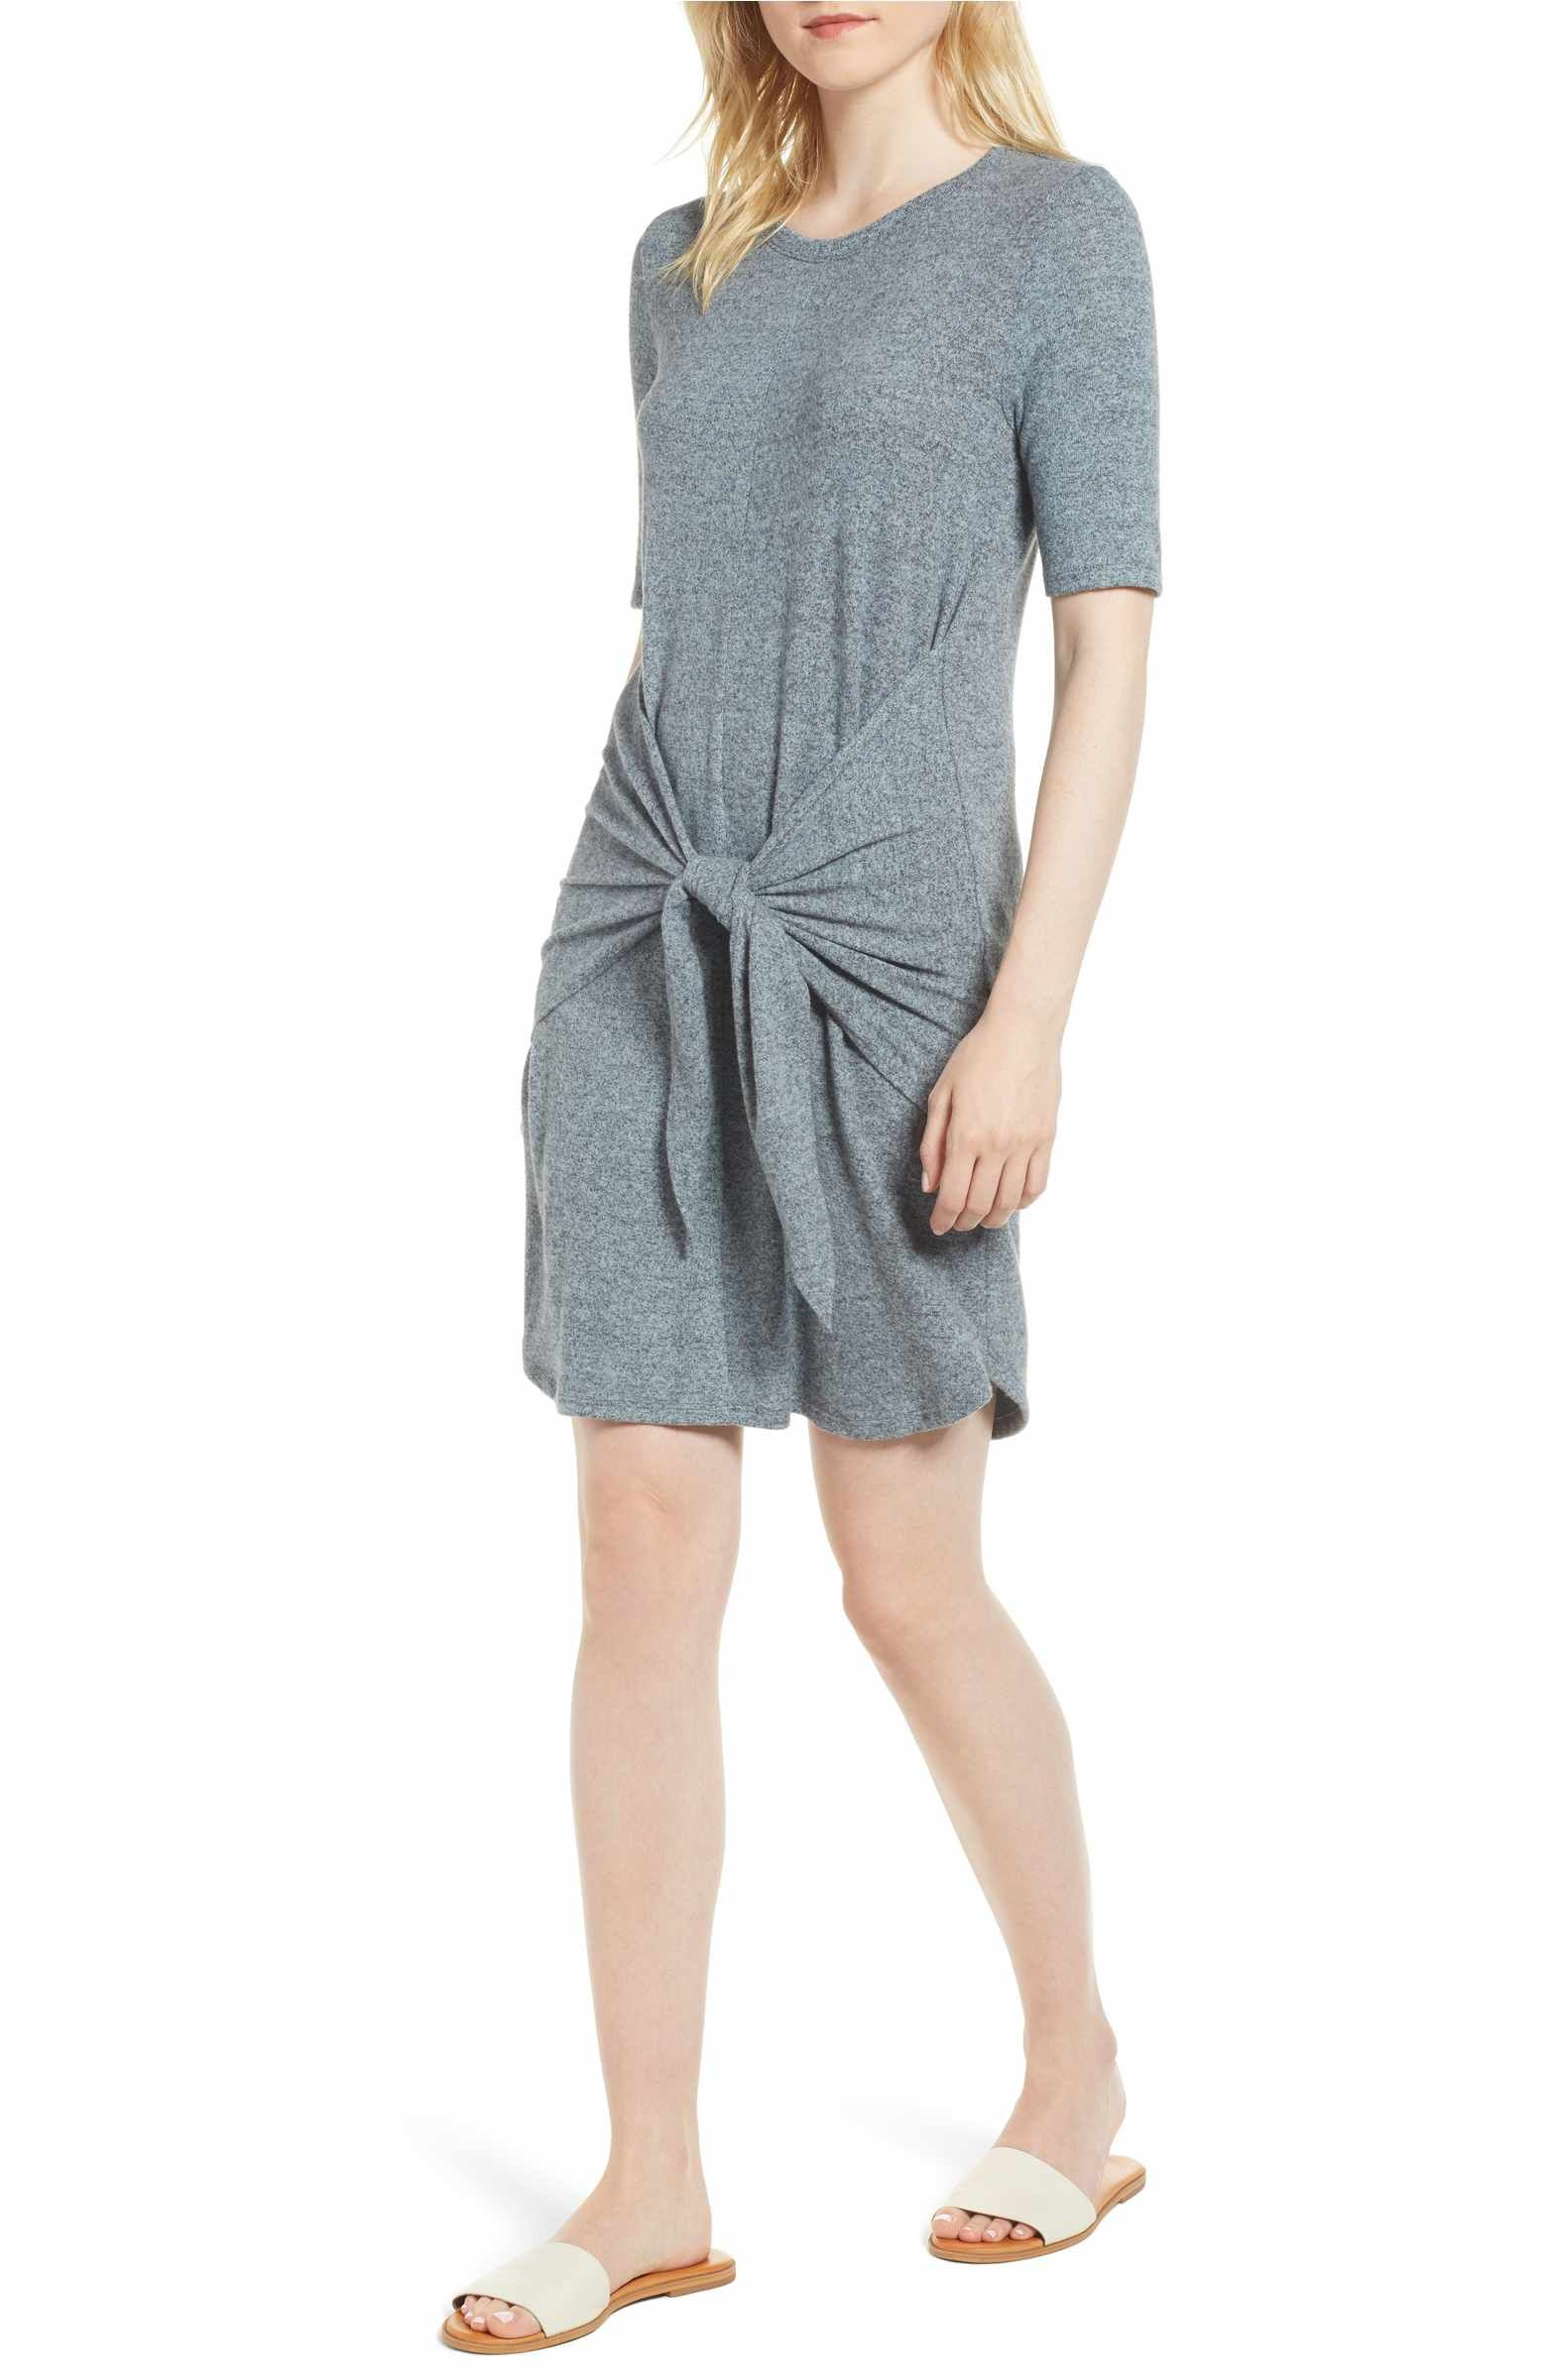 82e2f9c22d7 Main Image - Caslon Off-Duty Tie Front Knit Dress